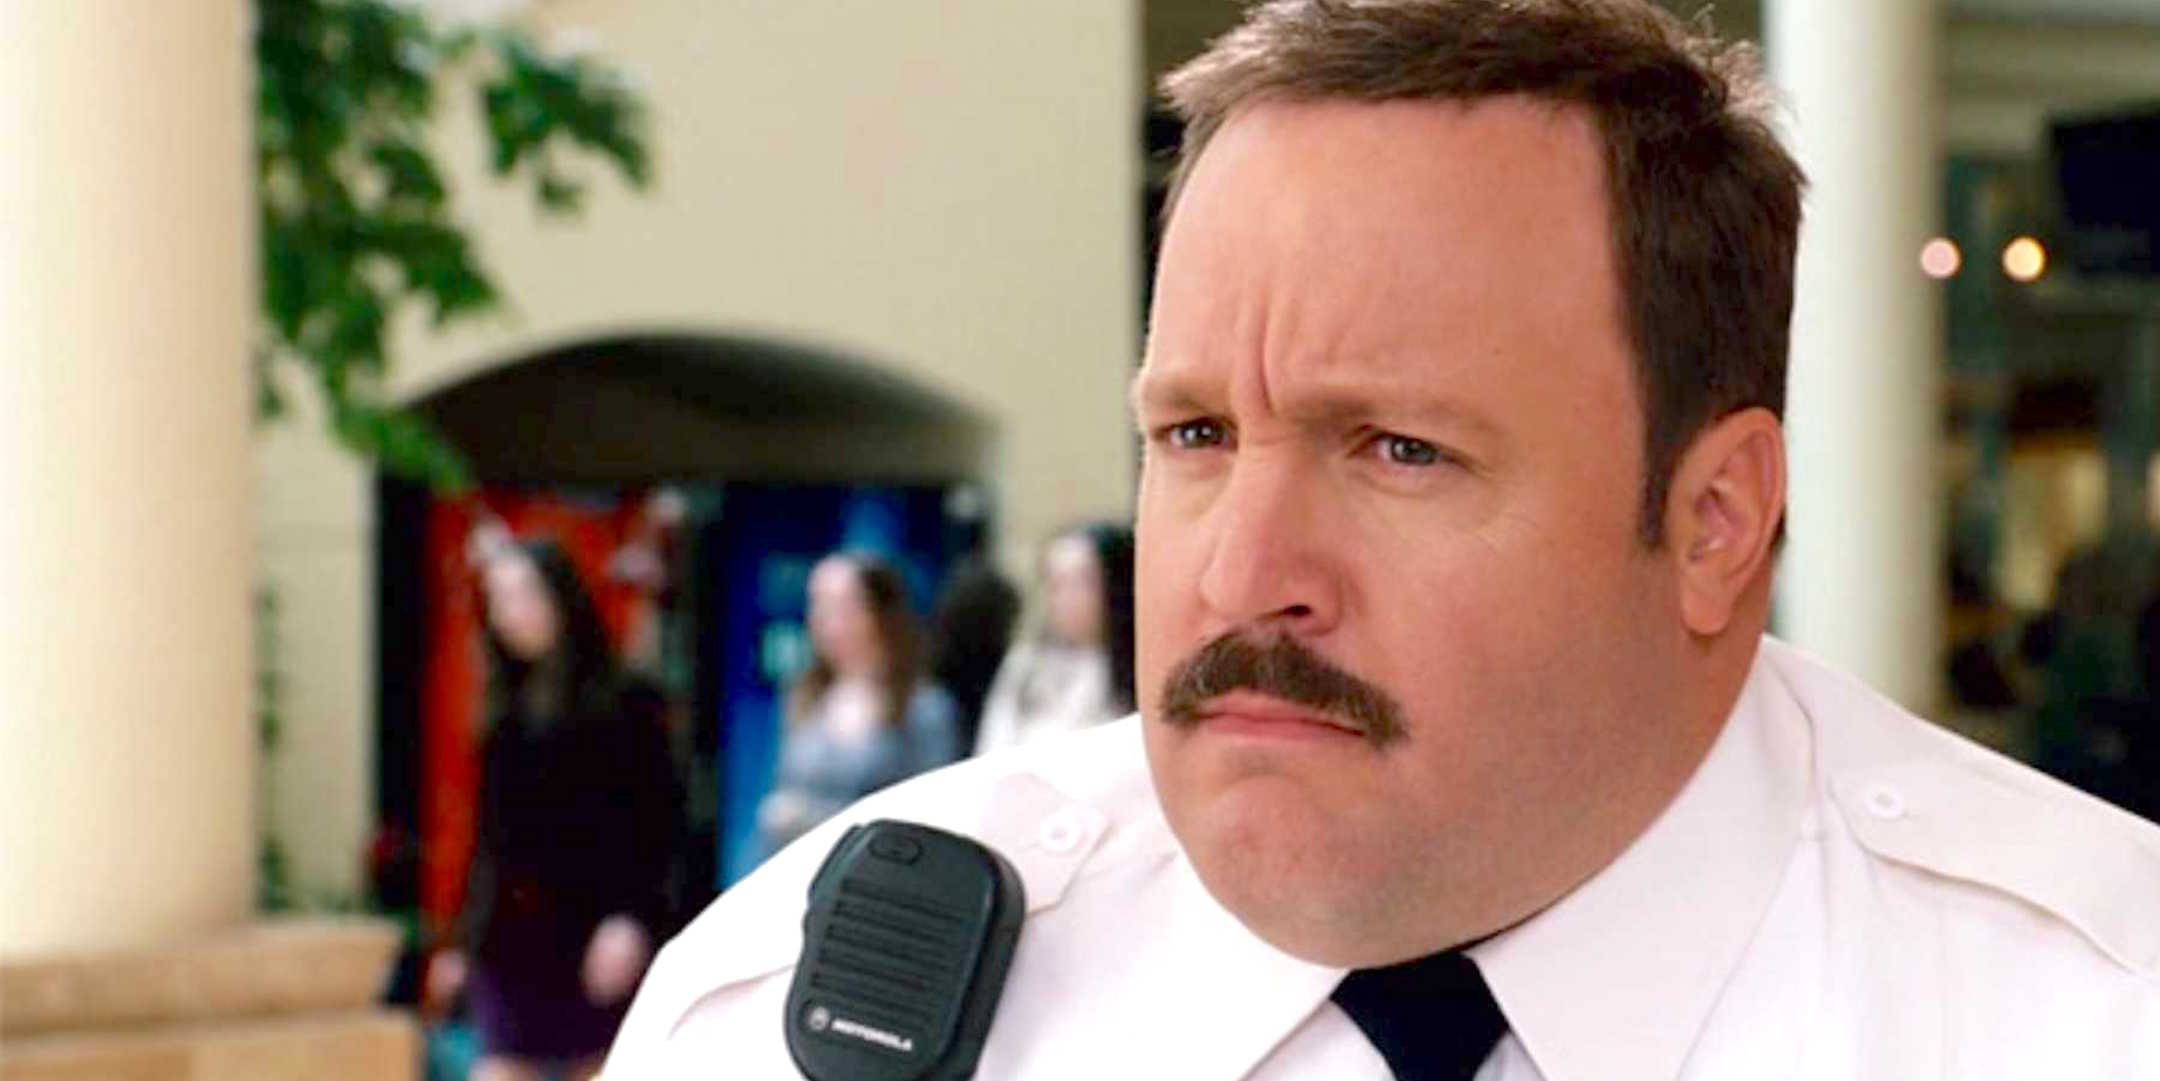 mall cop, police, lawyer, law, america